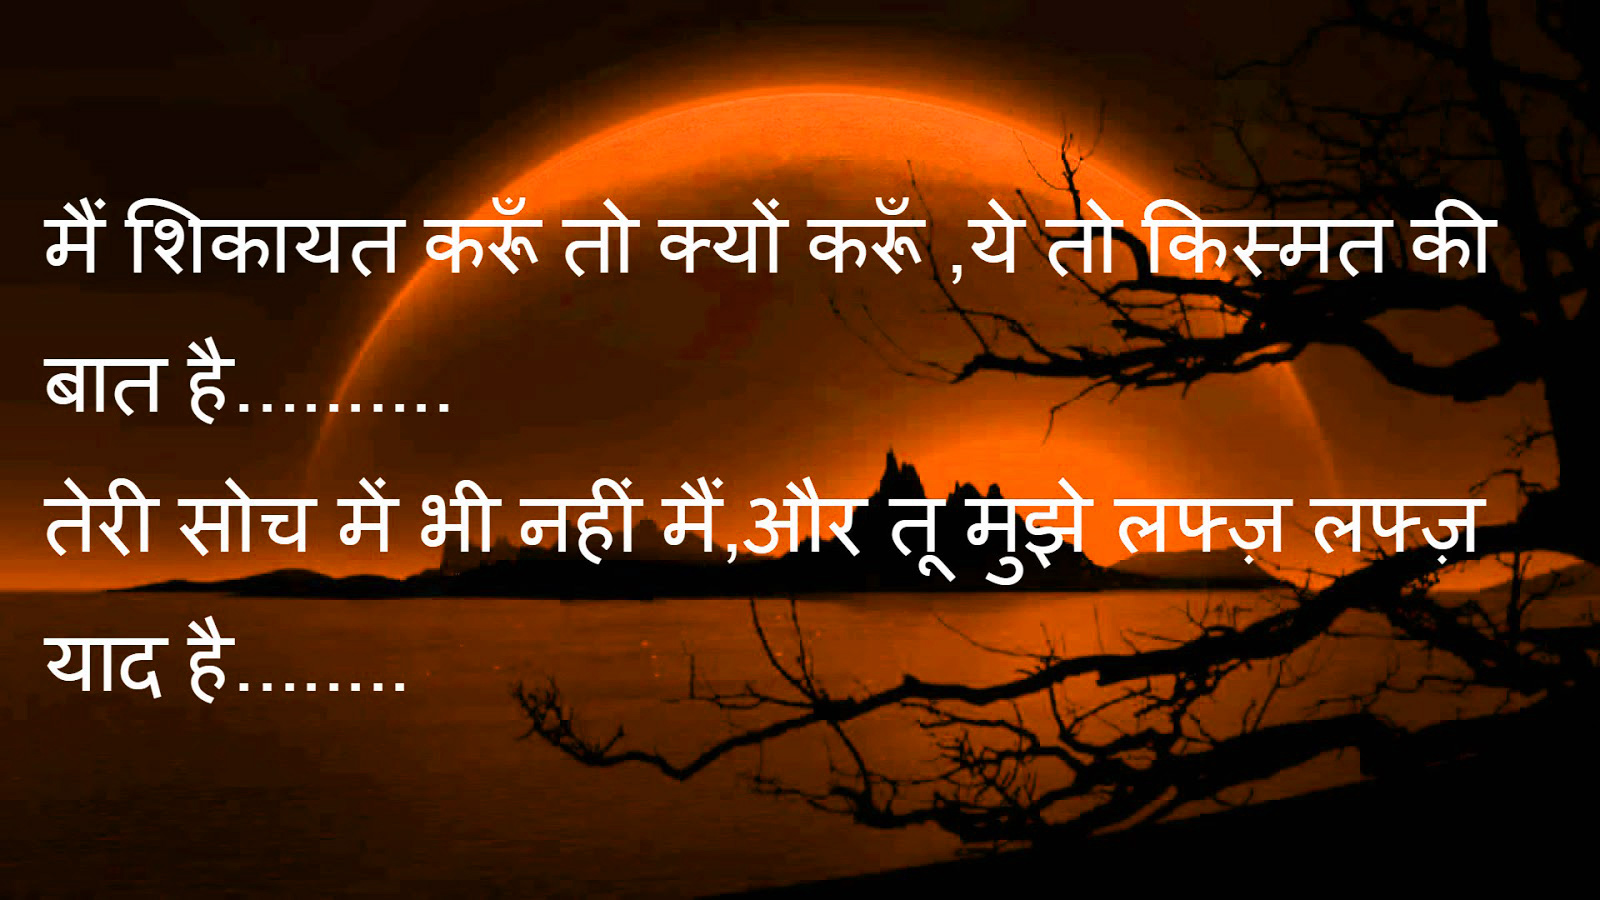 Hindi Status Quotes Break Up Images Wallpaper Pictures